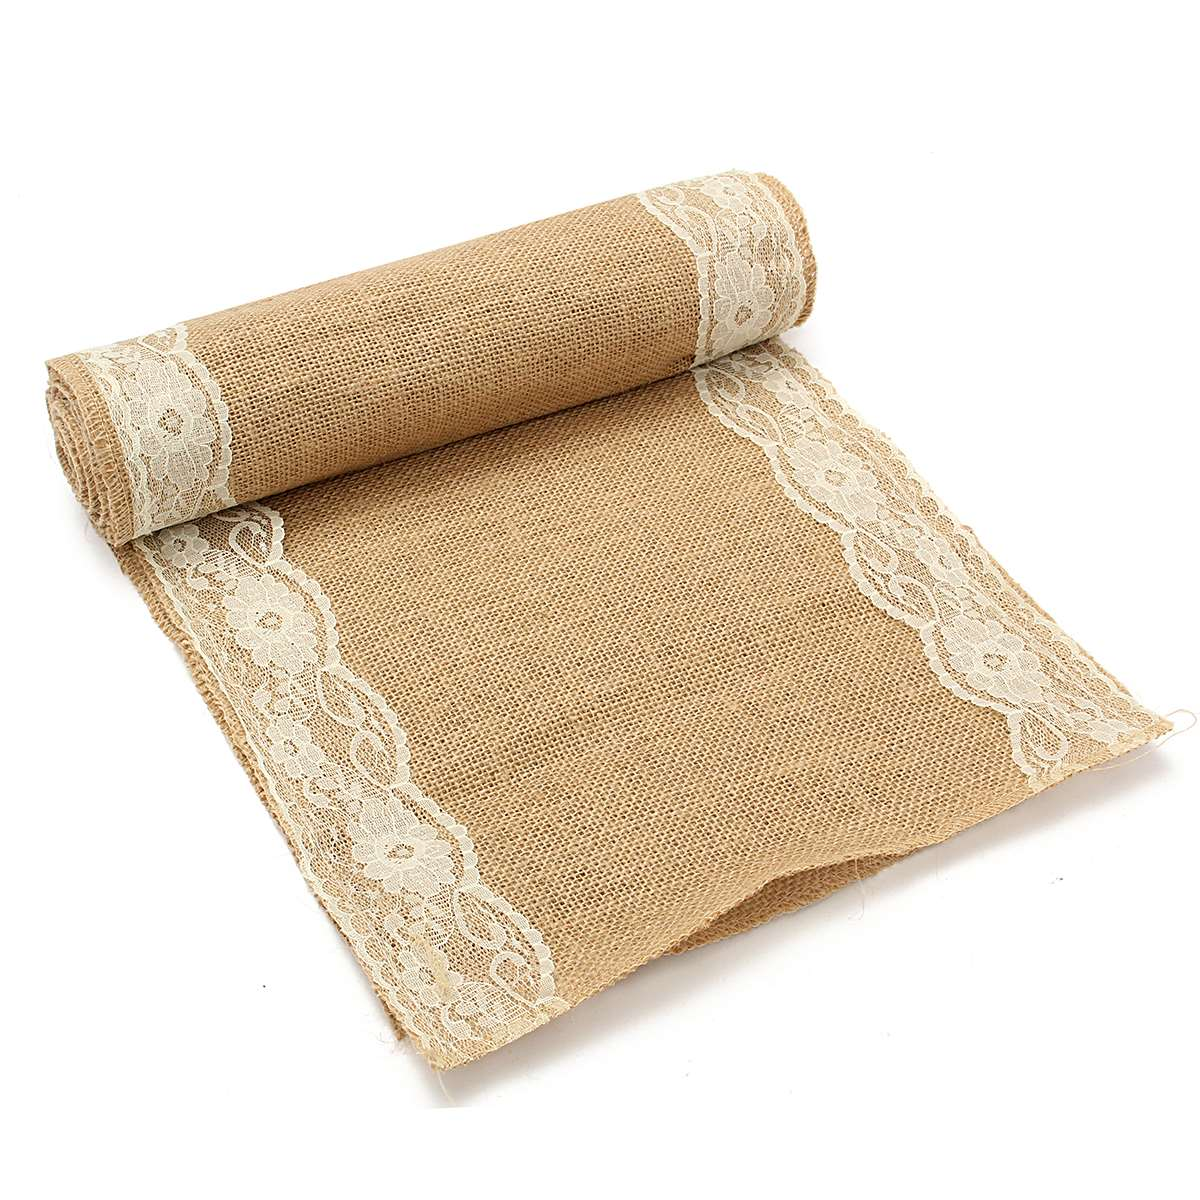 5 Colors Jute Rustic Burlap Lace Table Runner Vintage Rolls Banquet Decoration Household Room House Adornment Textile Fabric(China (Mainland))